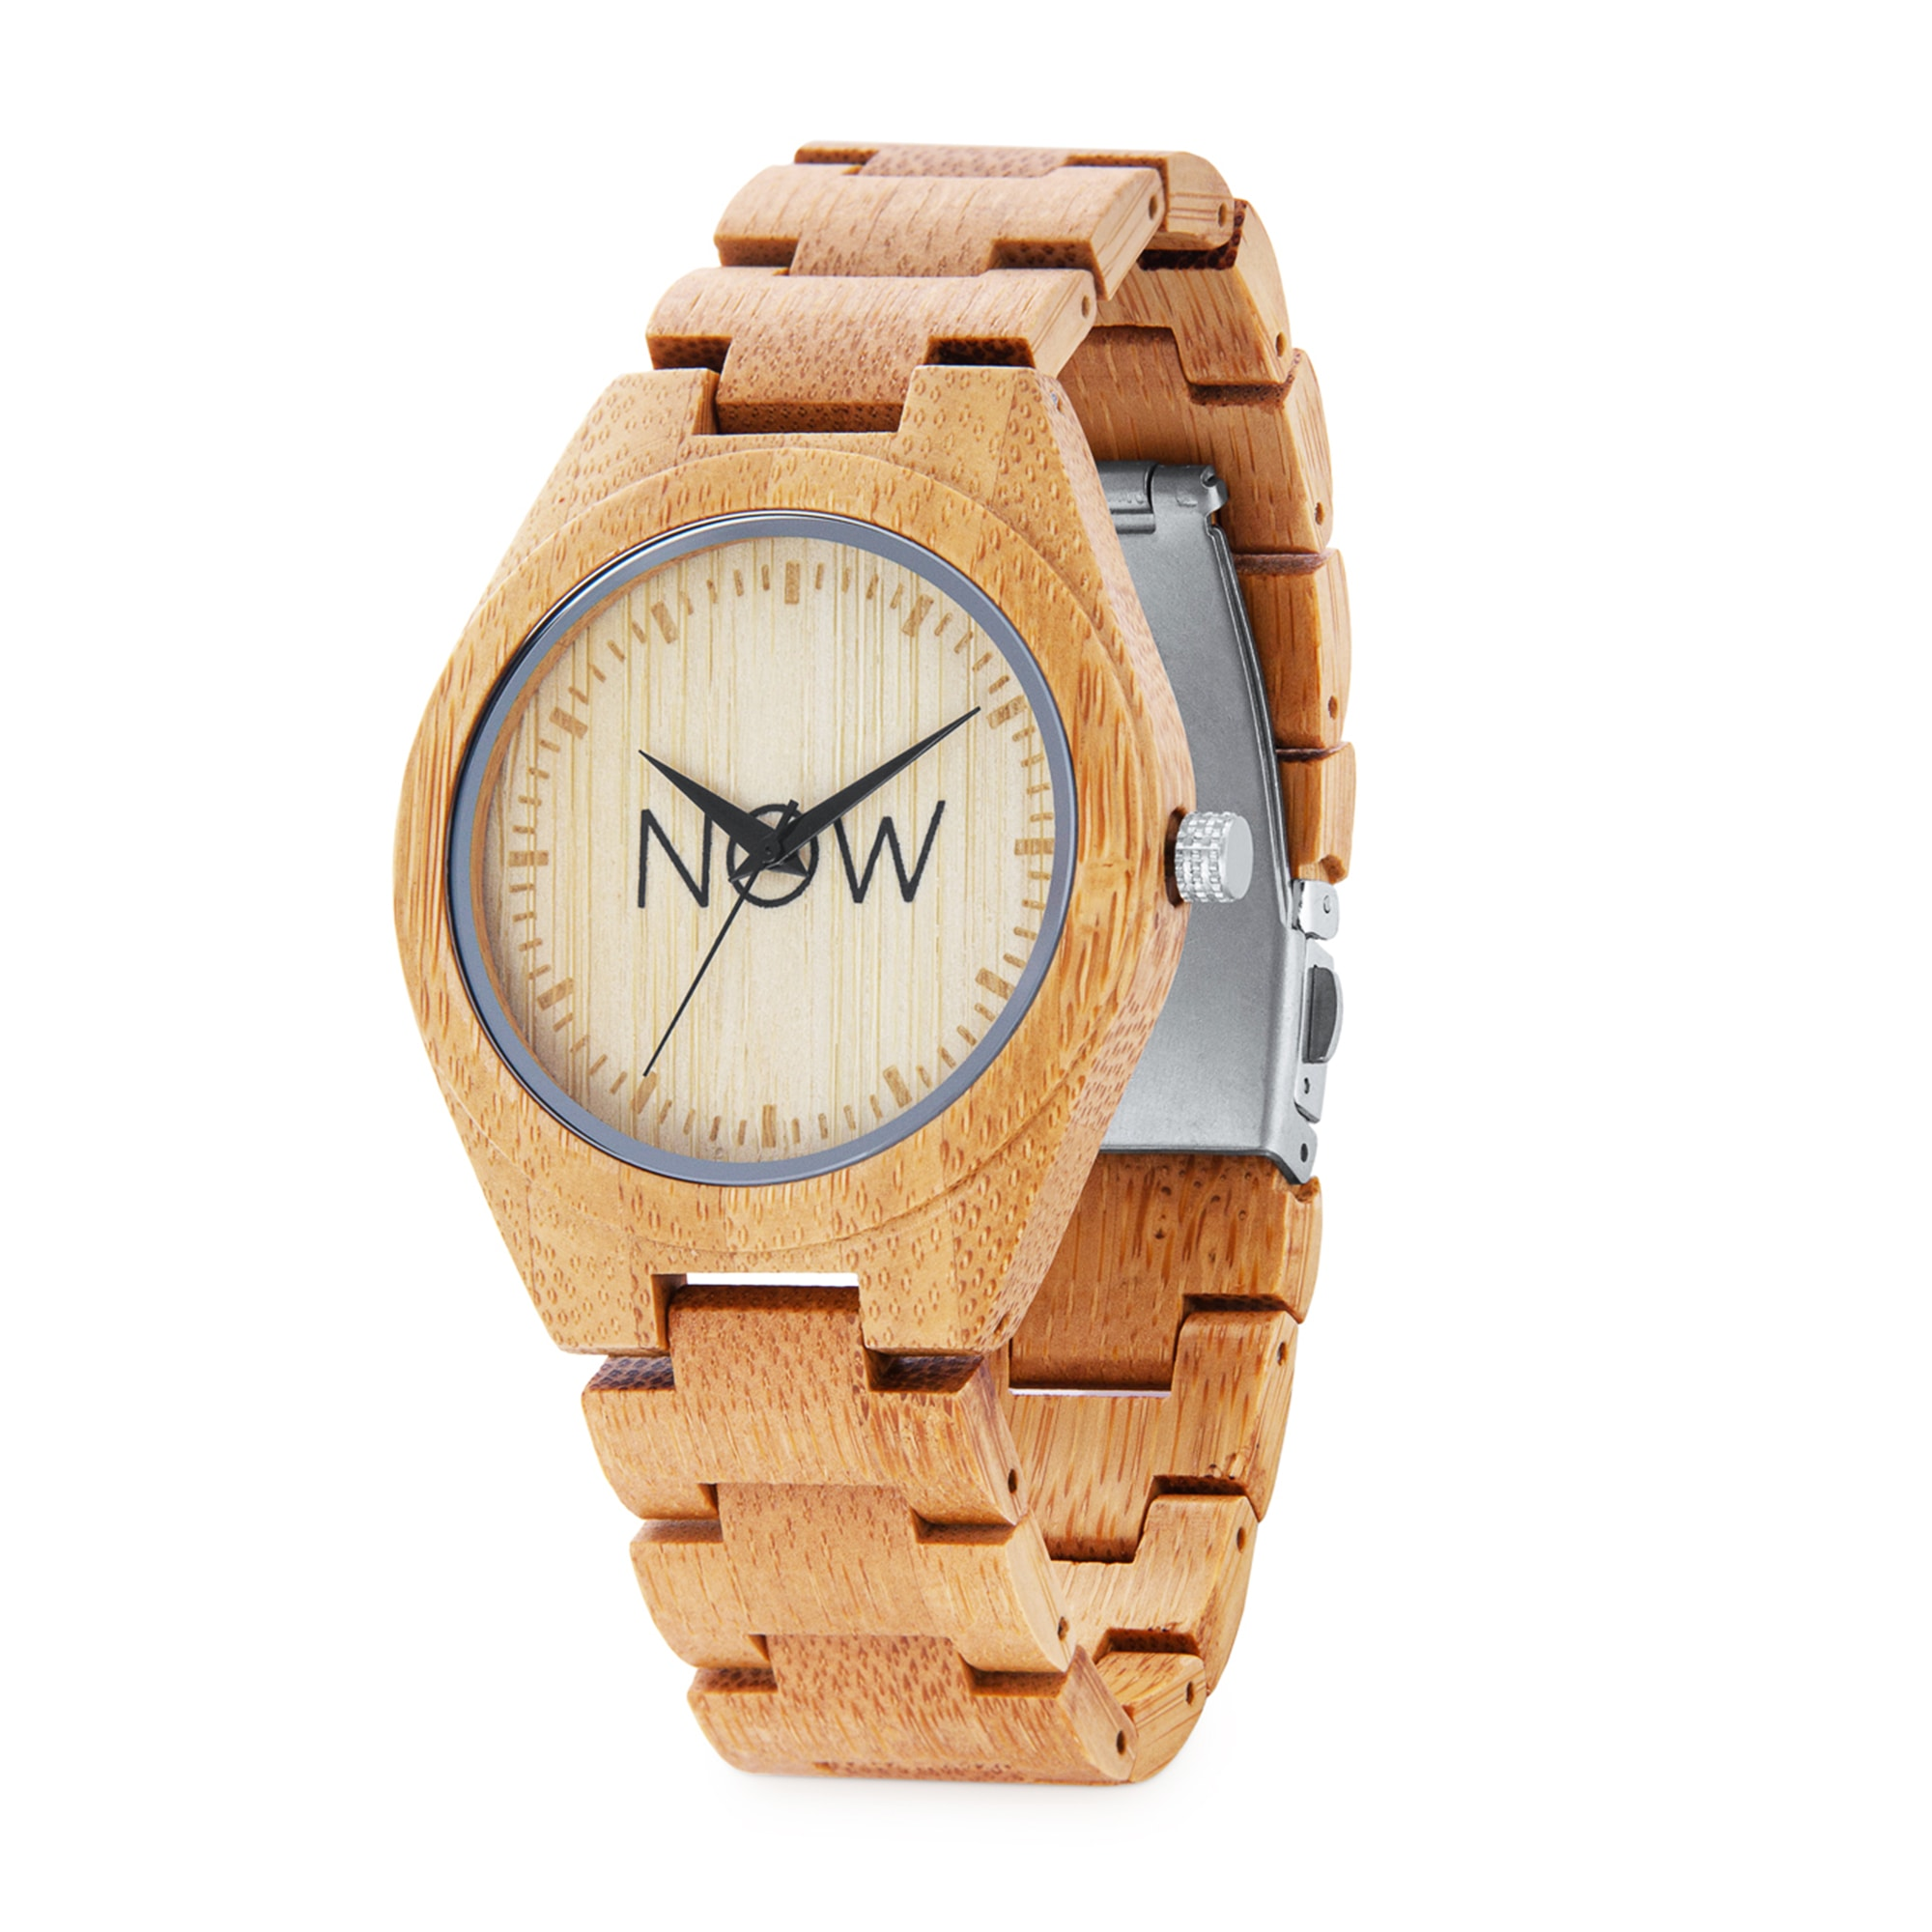 now-watch-wood